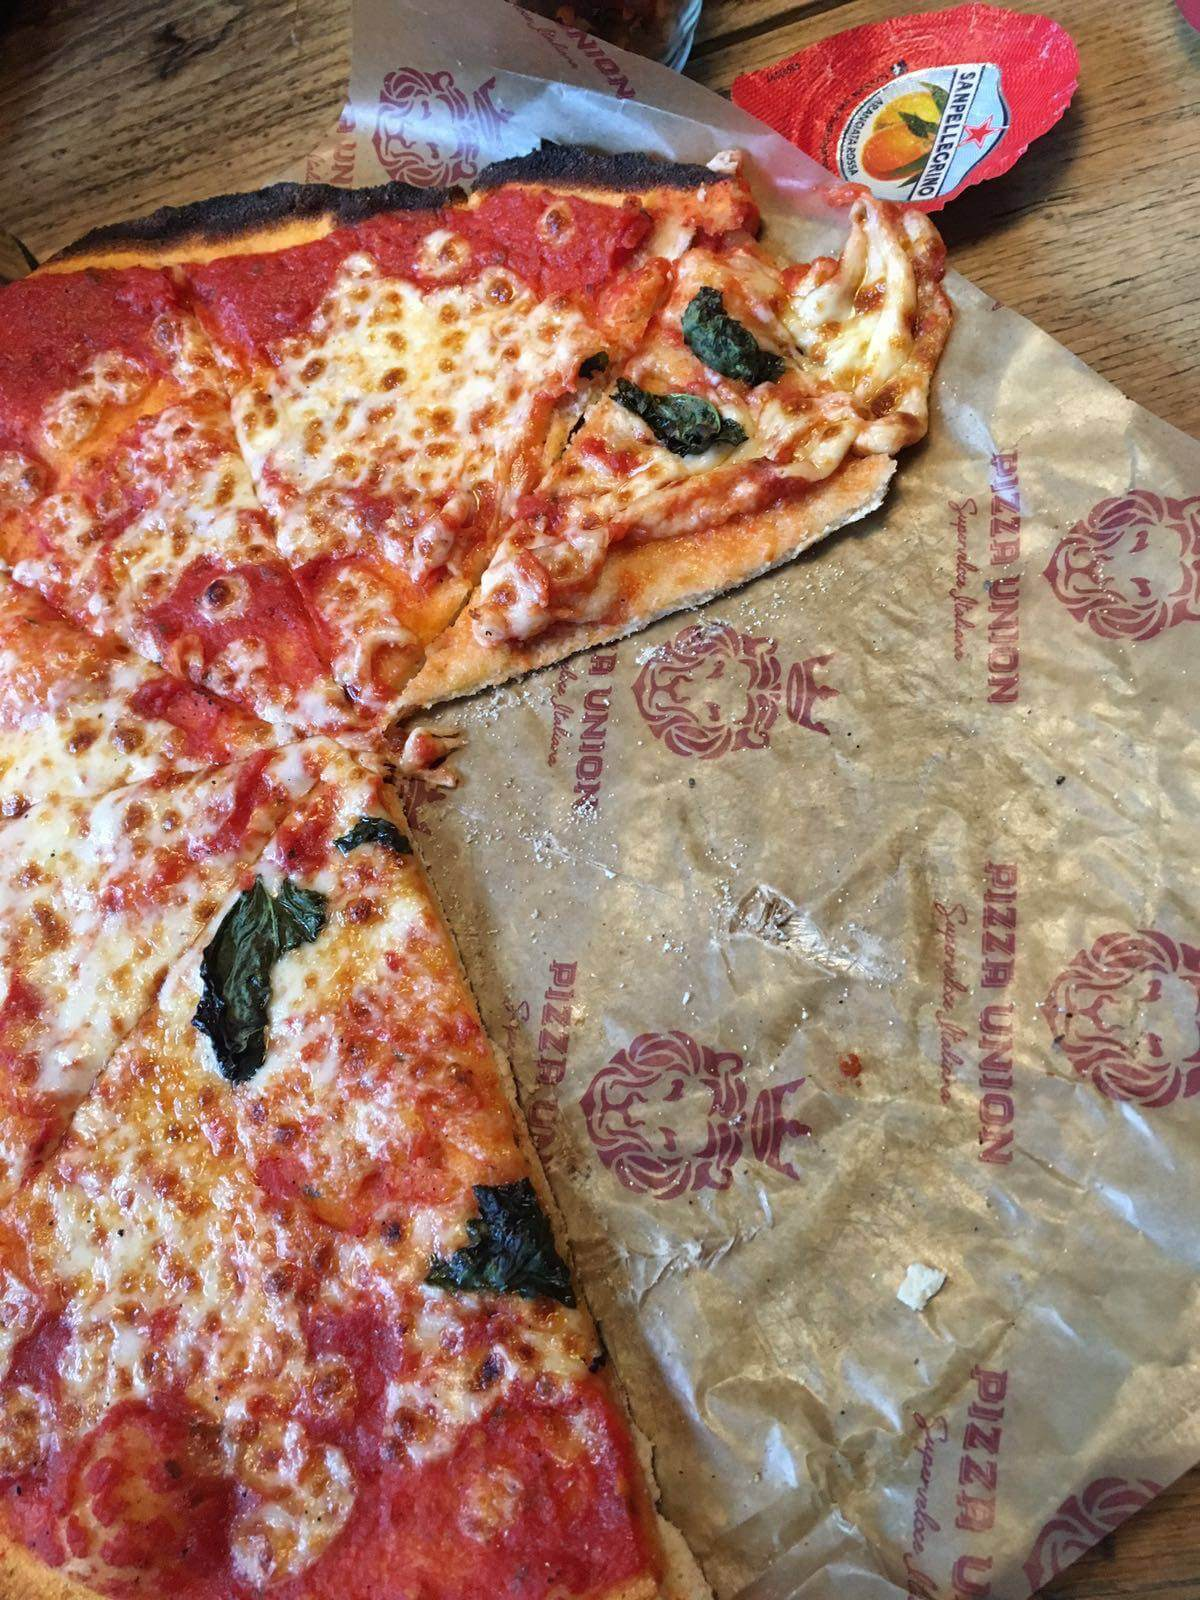 Delicious Pizza from pizza Union, Kings Cross - A weekend in London